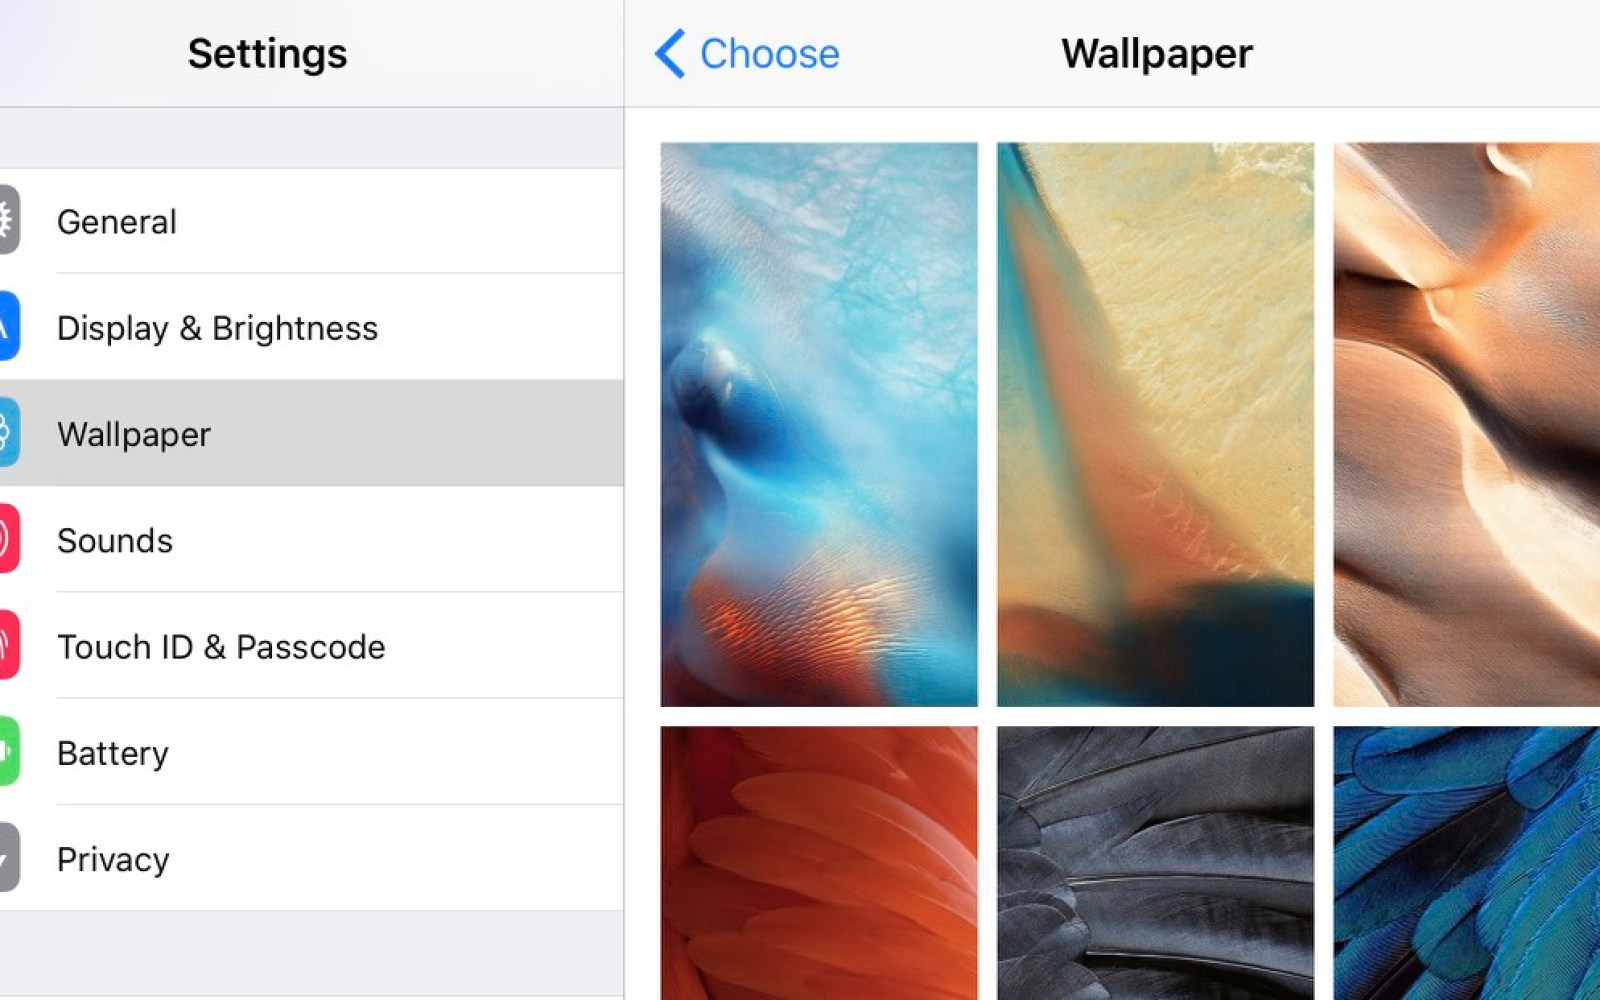 Here are all of iOS 9's colorful new wallpapers for your iPhone